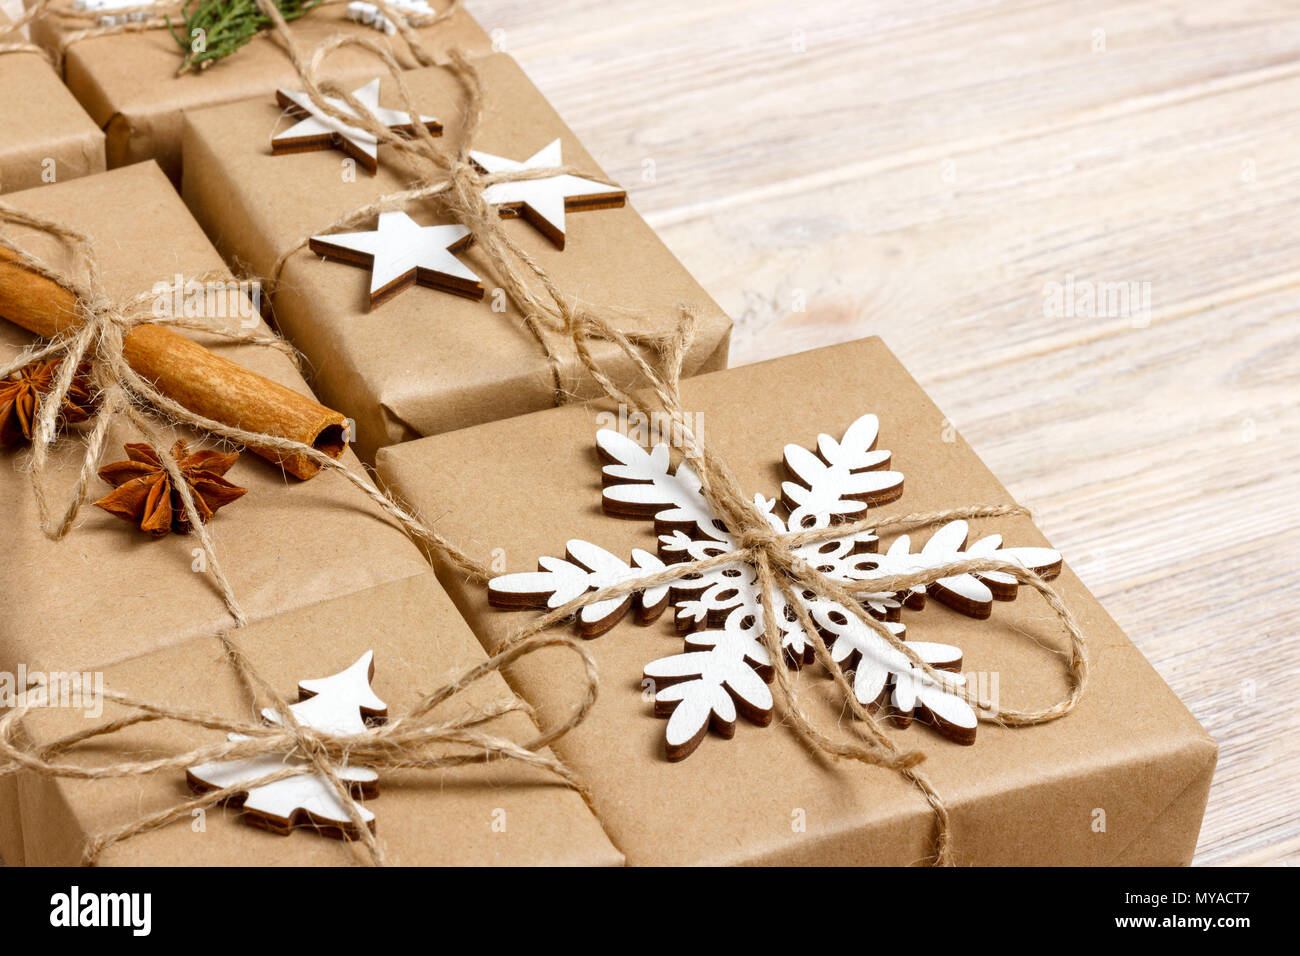 Handmade Craft Christmas Gifts Or New Year Rustic Presents Gifts On Wooden Background Stock Photo Alamy